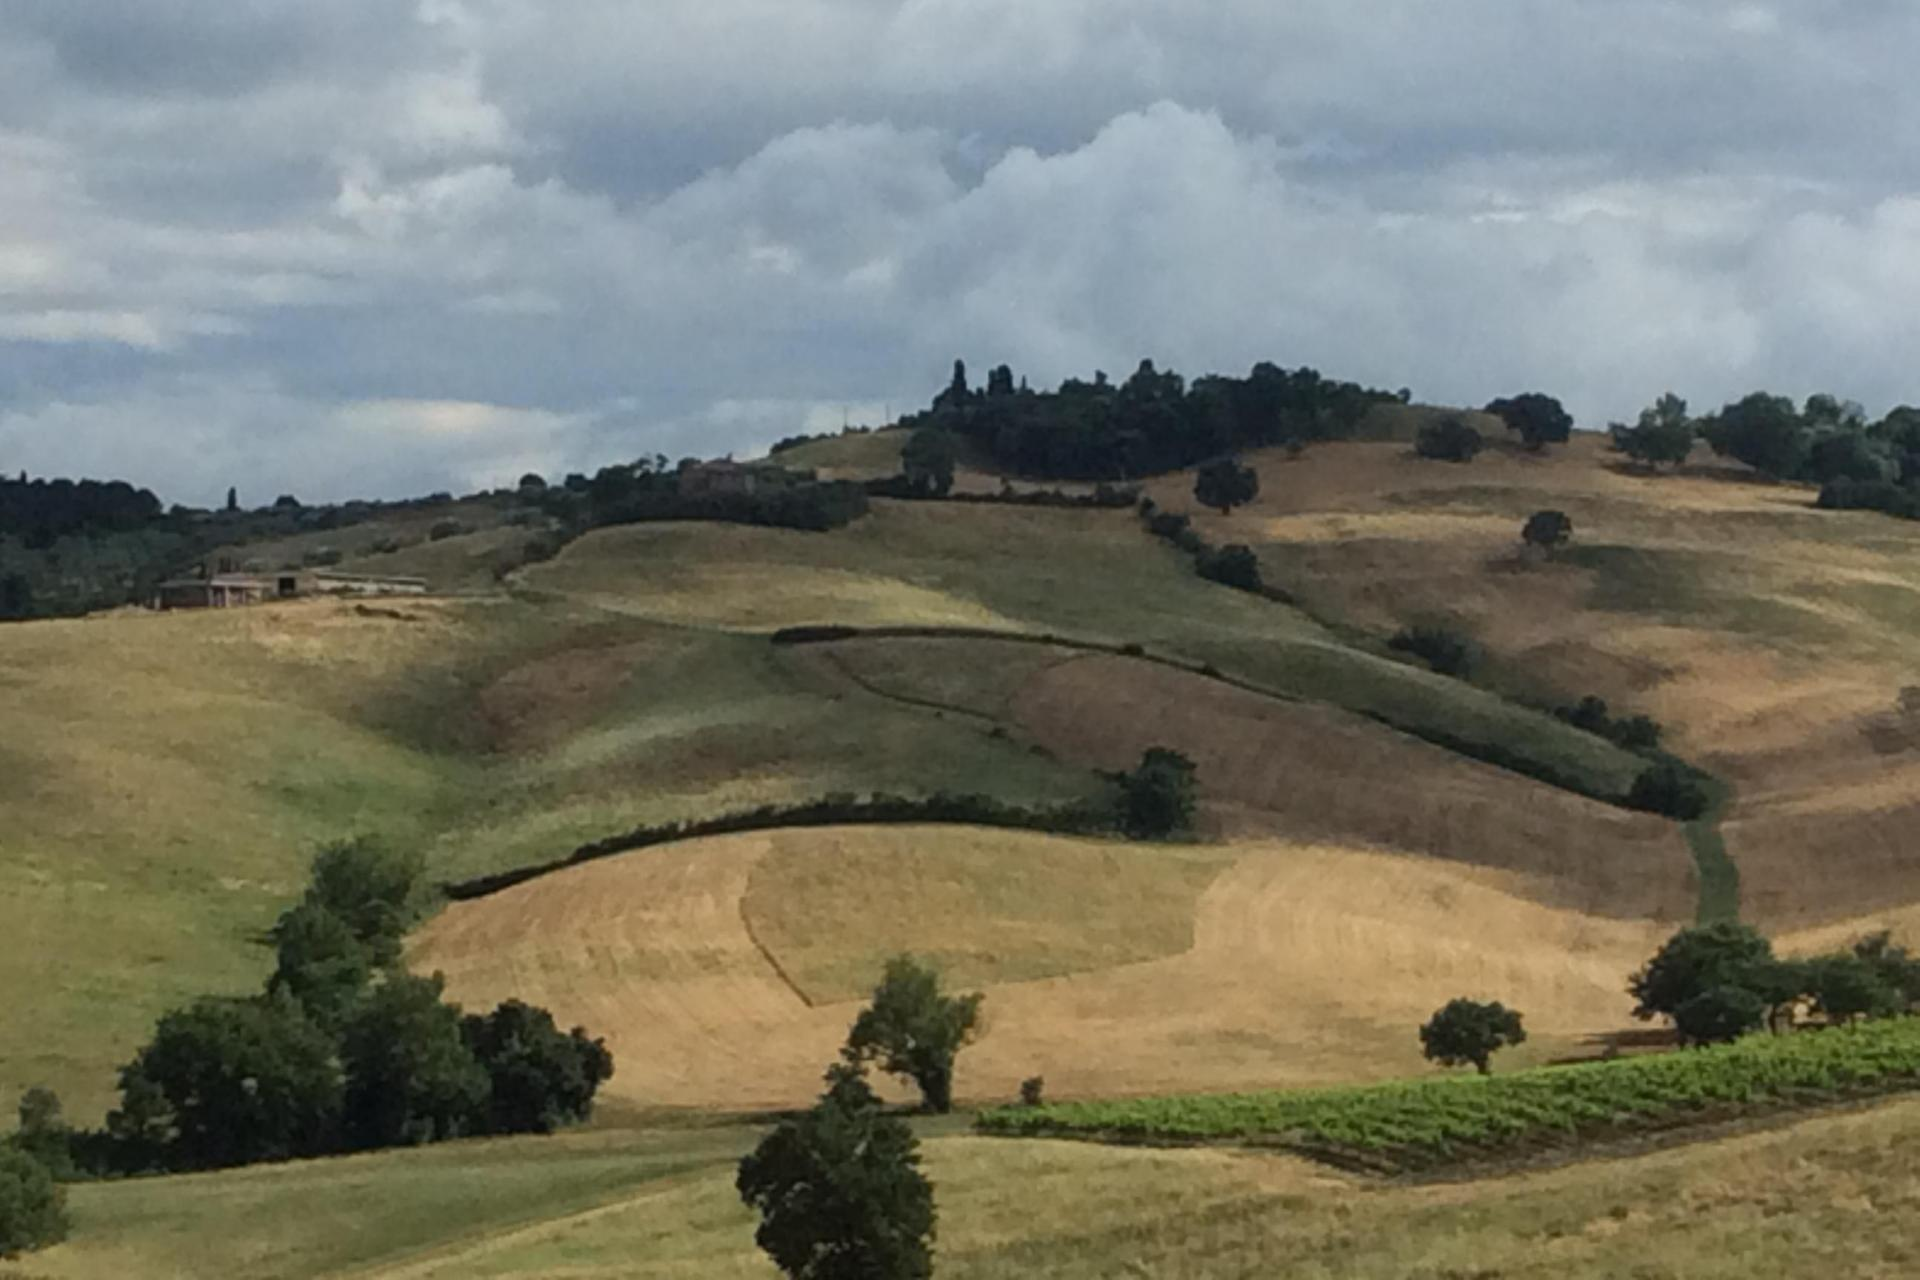 Tuscany cycling tour from Pienza to Siena biking